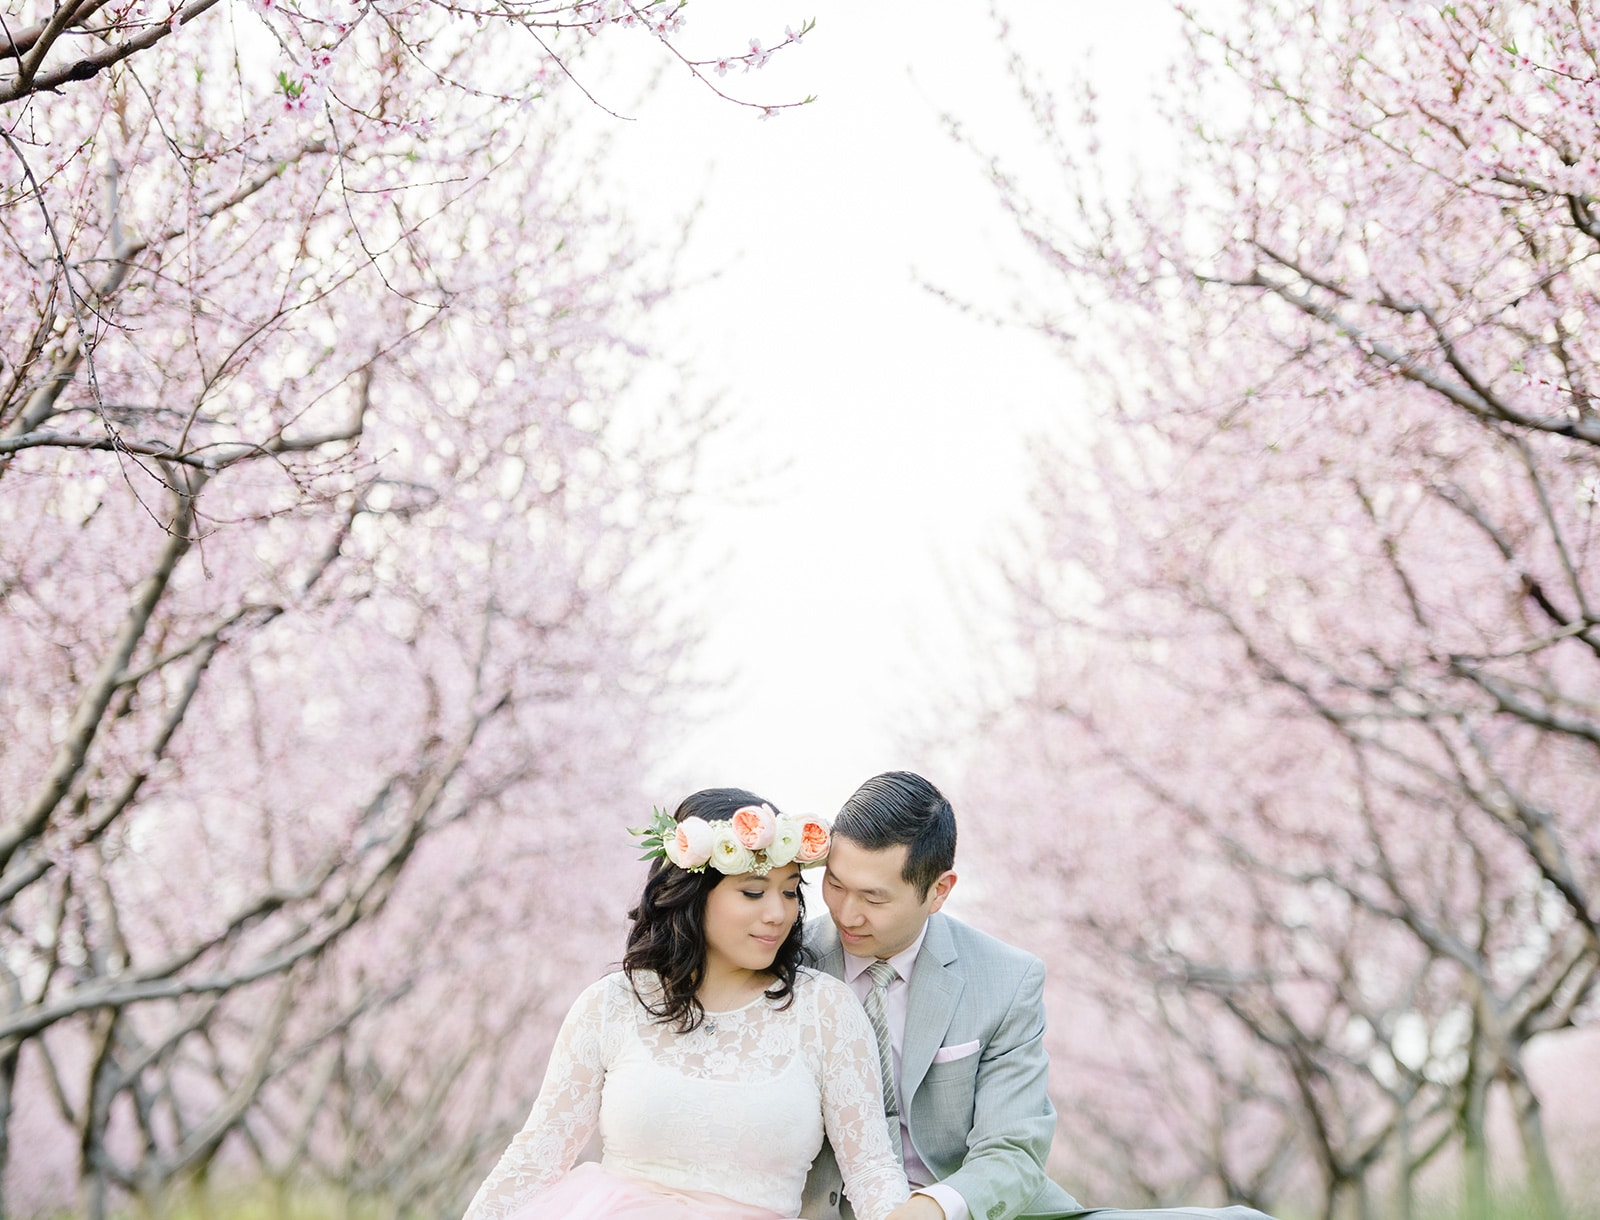 Being a Wedding Photographer: Going Full-Time